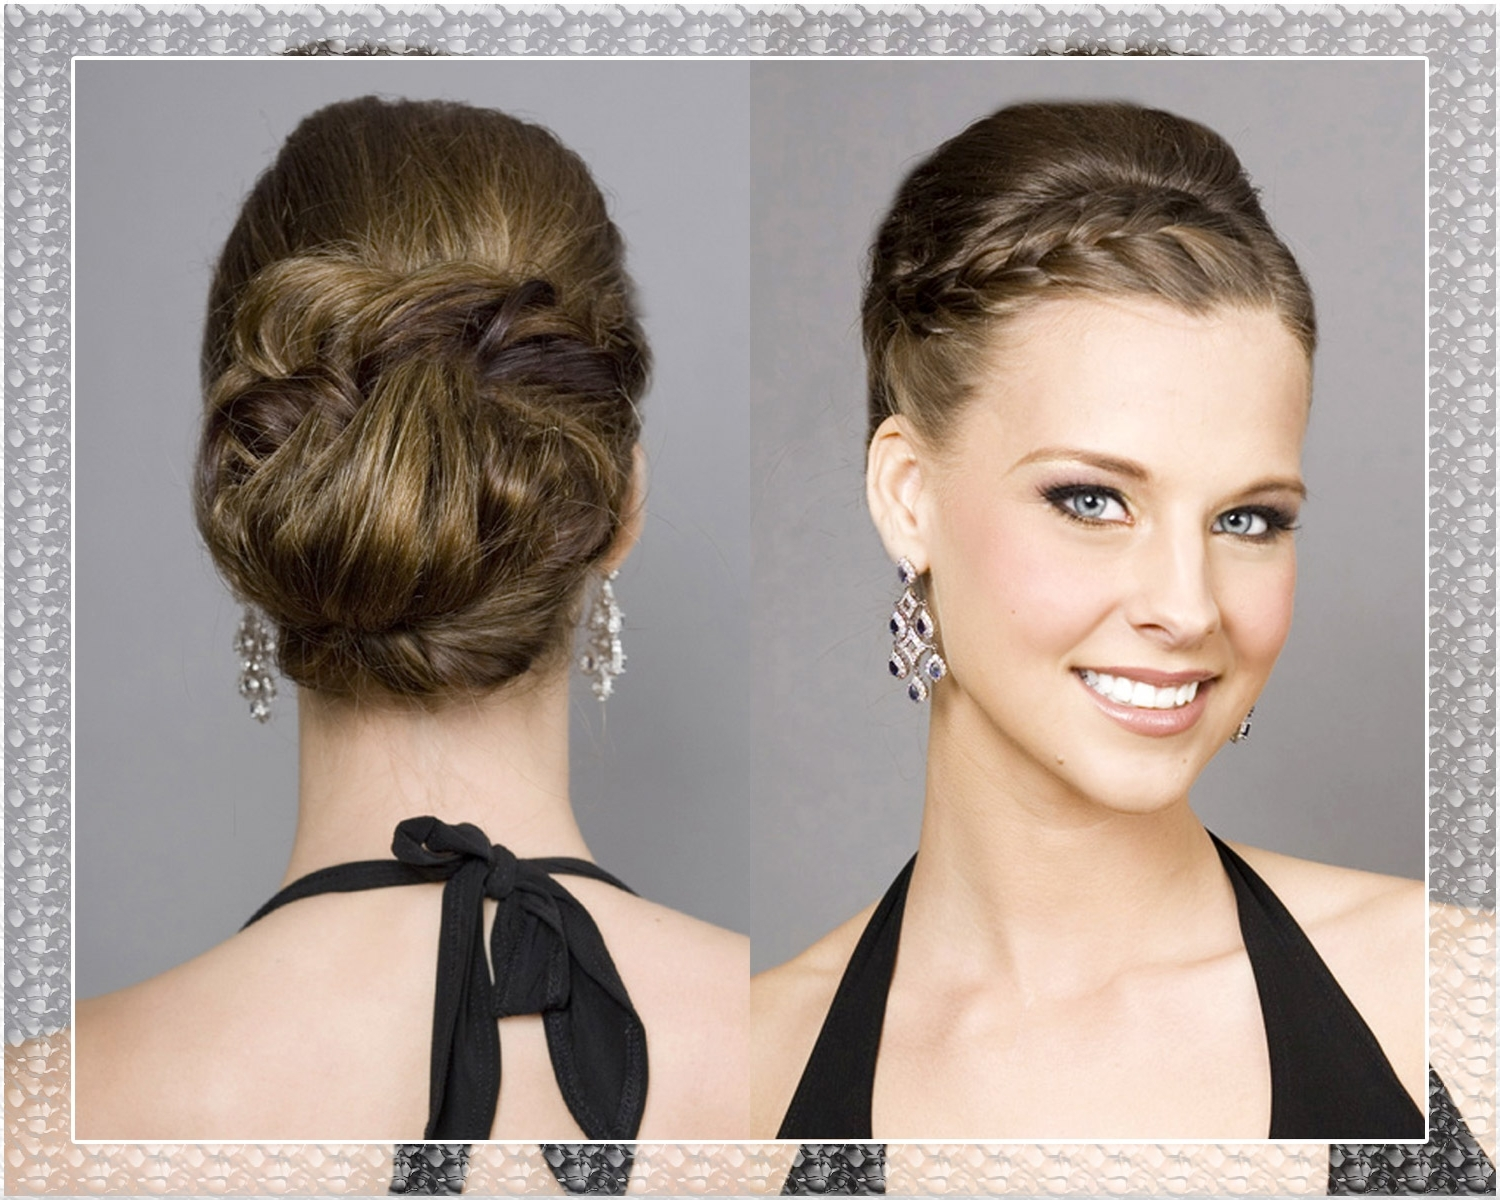 Braided Updo Wedding Hairstyles | Medium Hair Styles Ideas – 1965 With Regard To Bridesmaid Updo Hairstyles For Thin Hair (View 5 of 15)